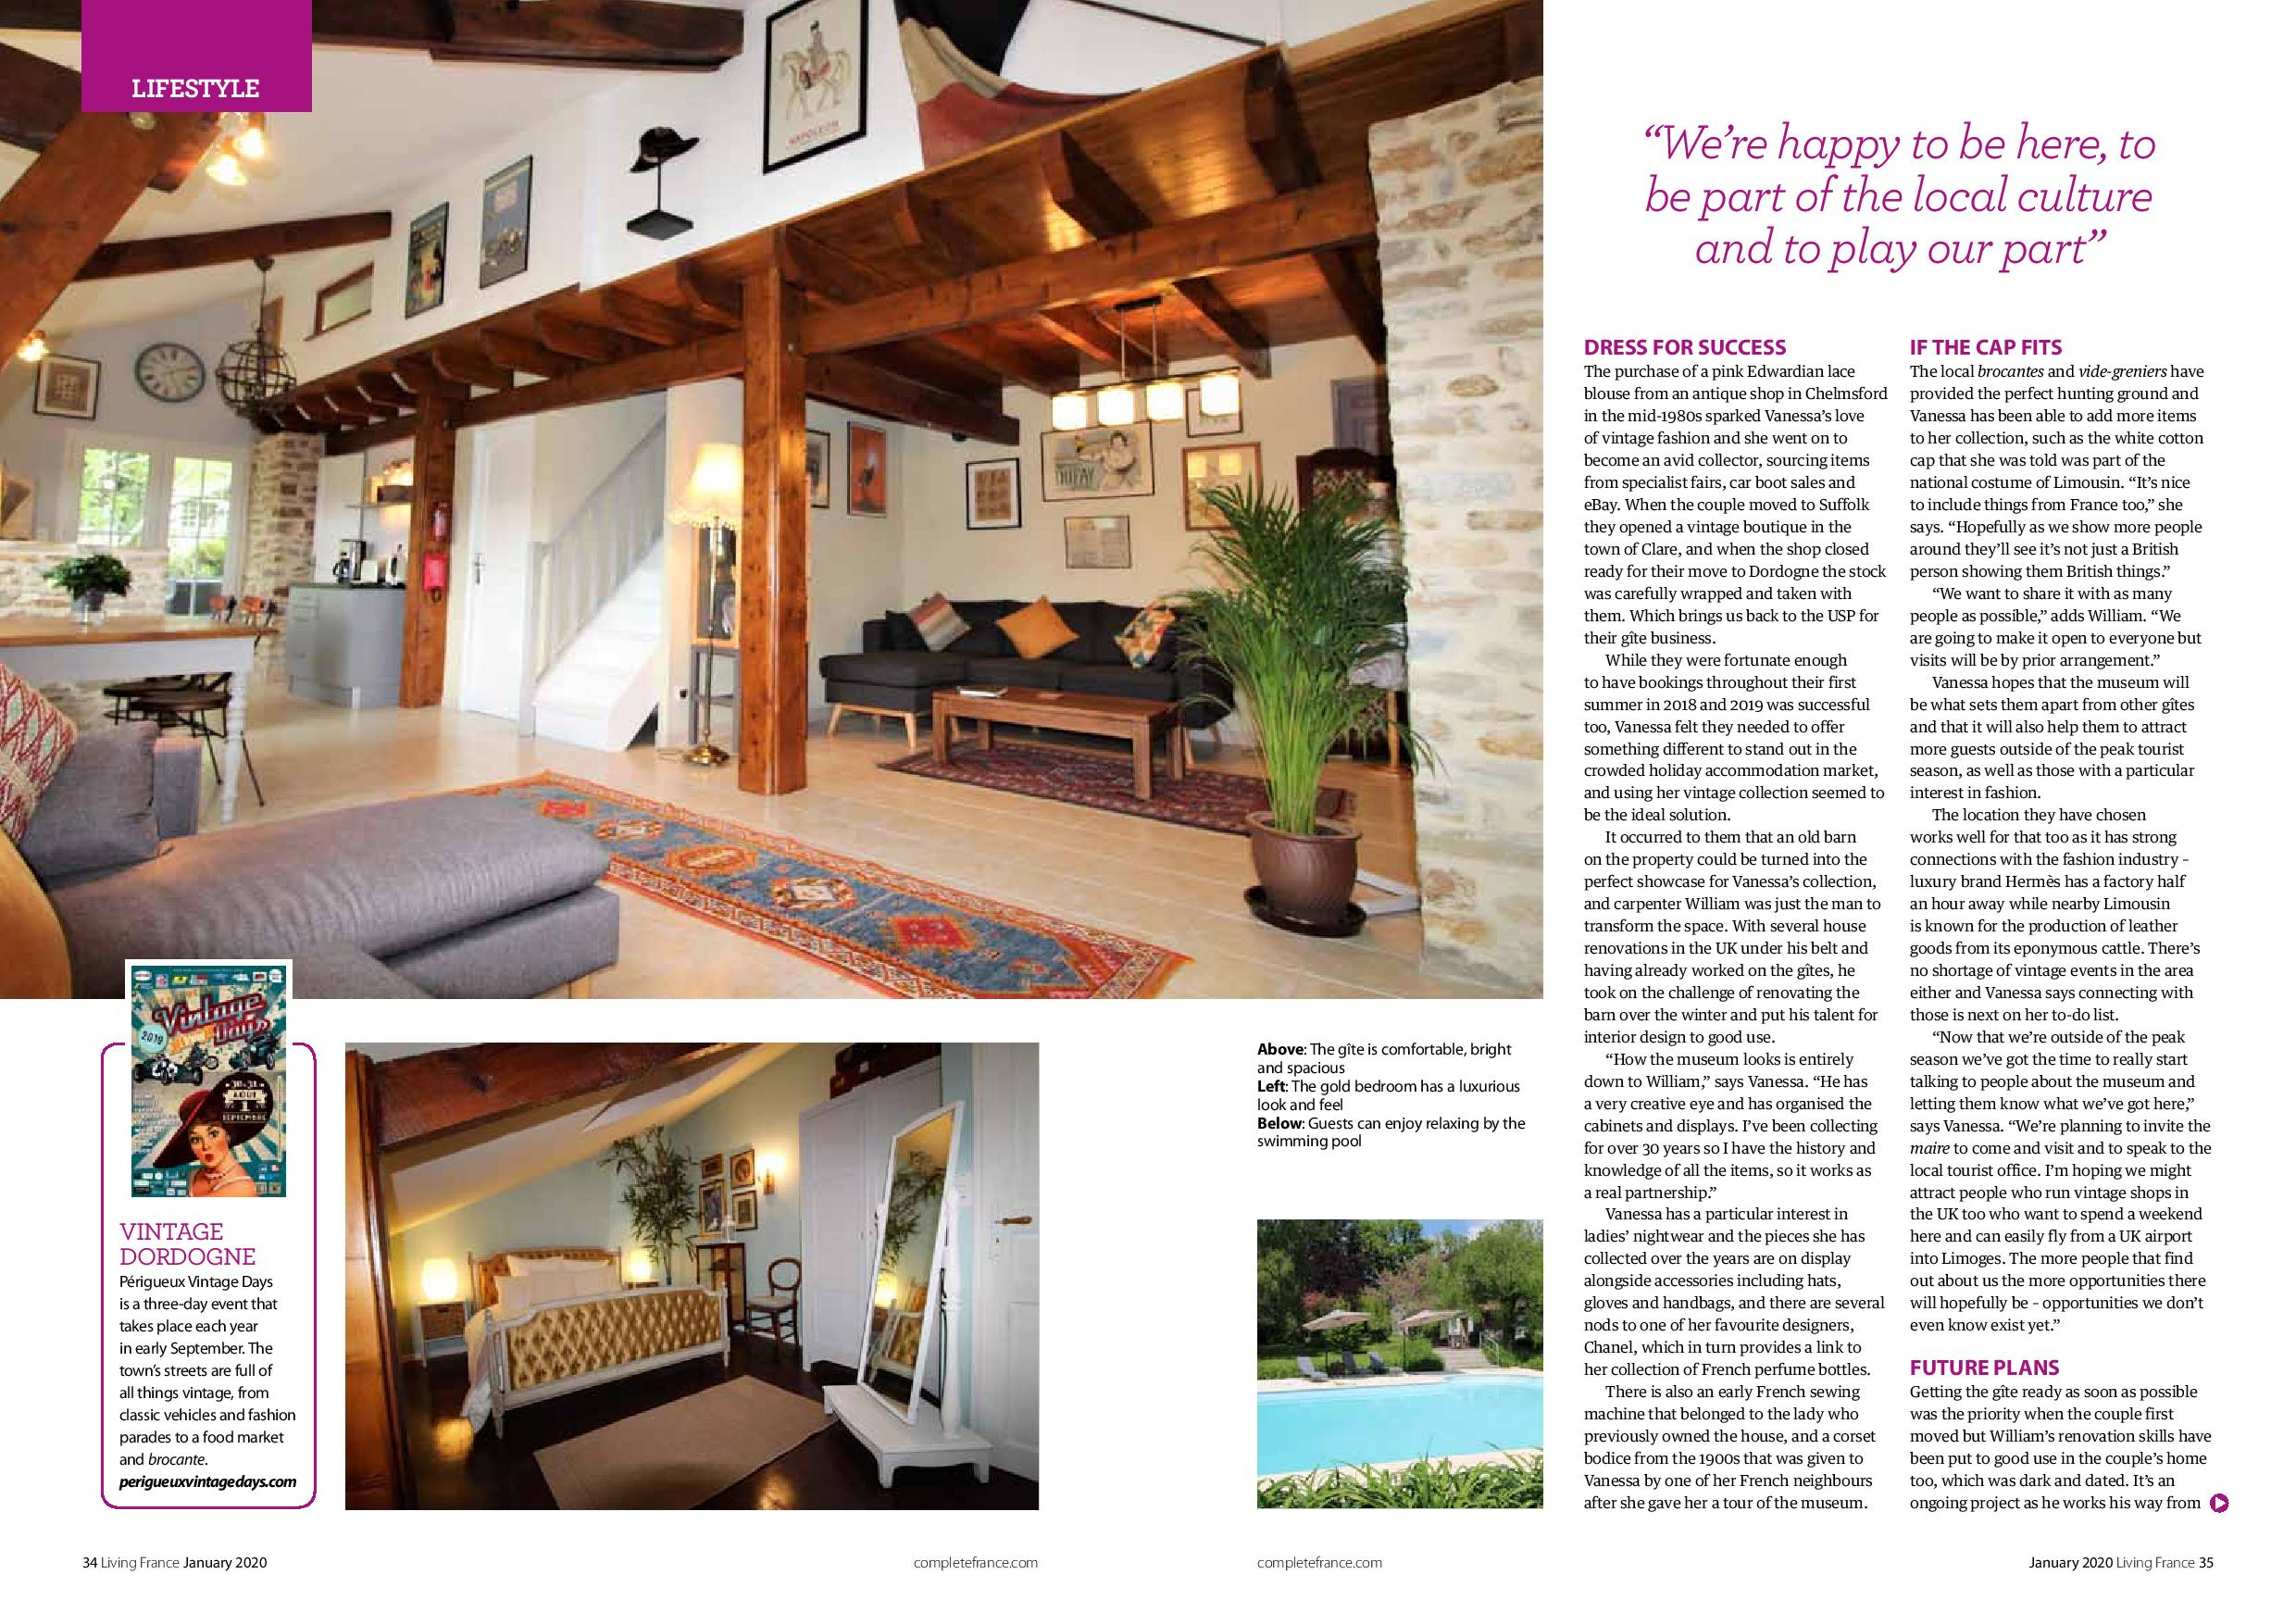 Living France Jan 20 Pages 34-35